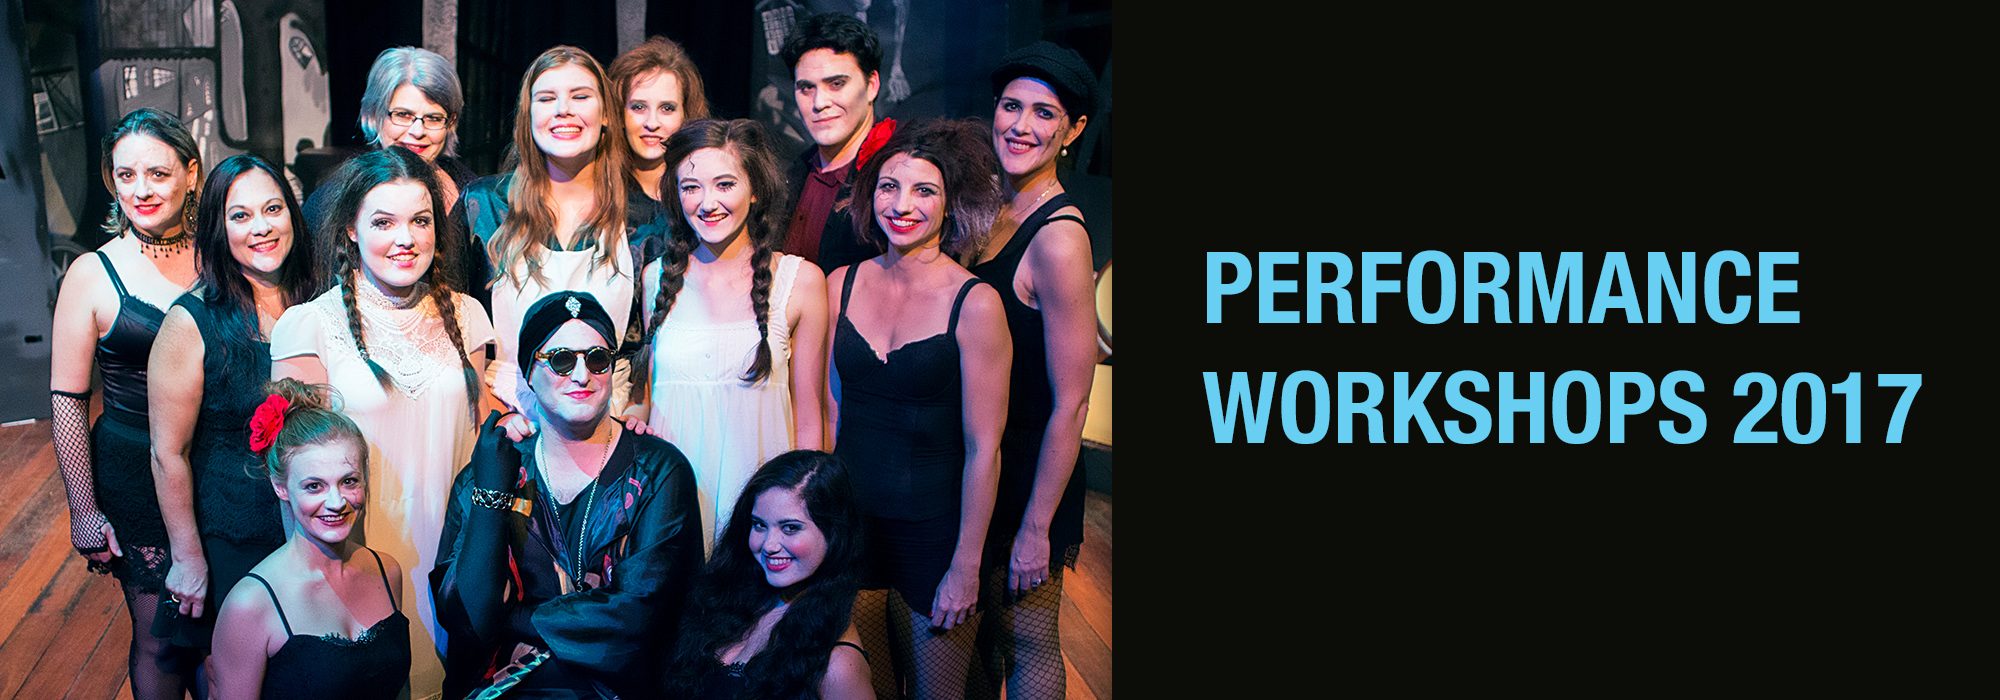 Performance workshops at Full Throttle Theatre Townsville 2017